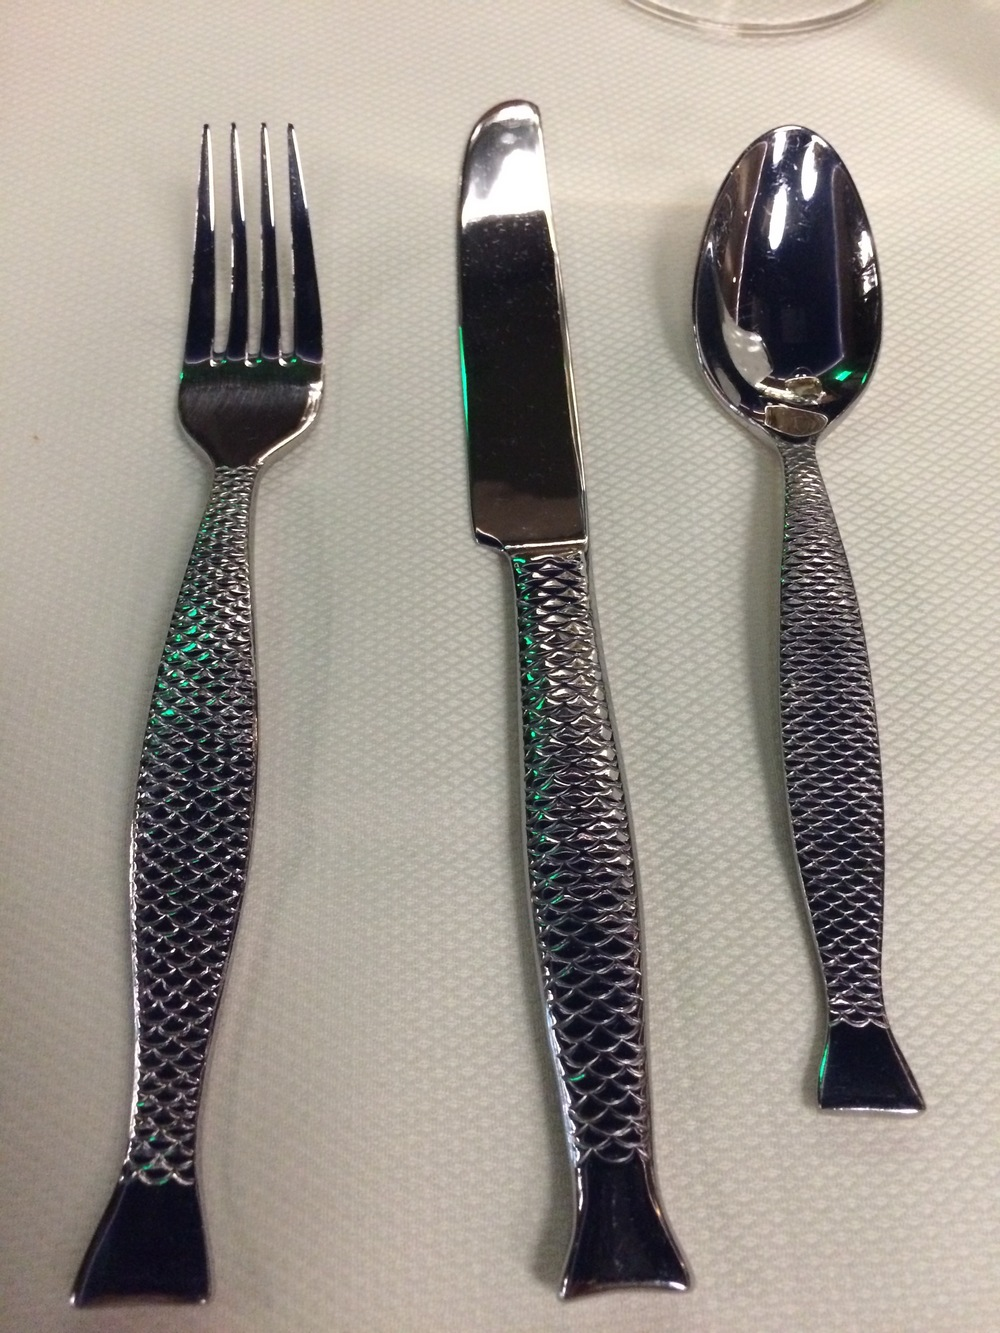 Keeping the fish theme from utensils to table cloth and napkins!